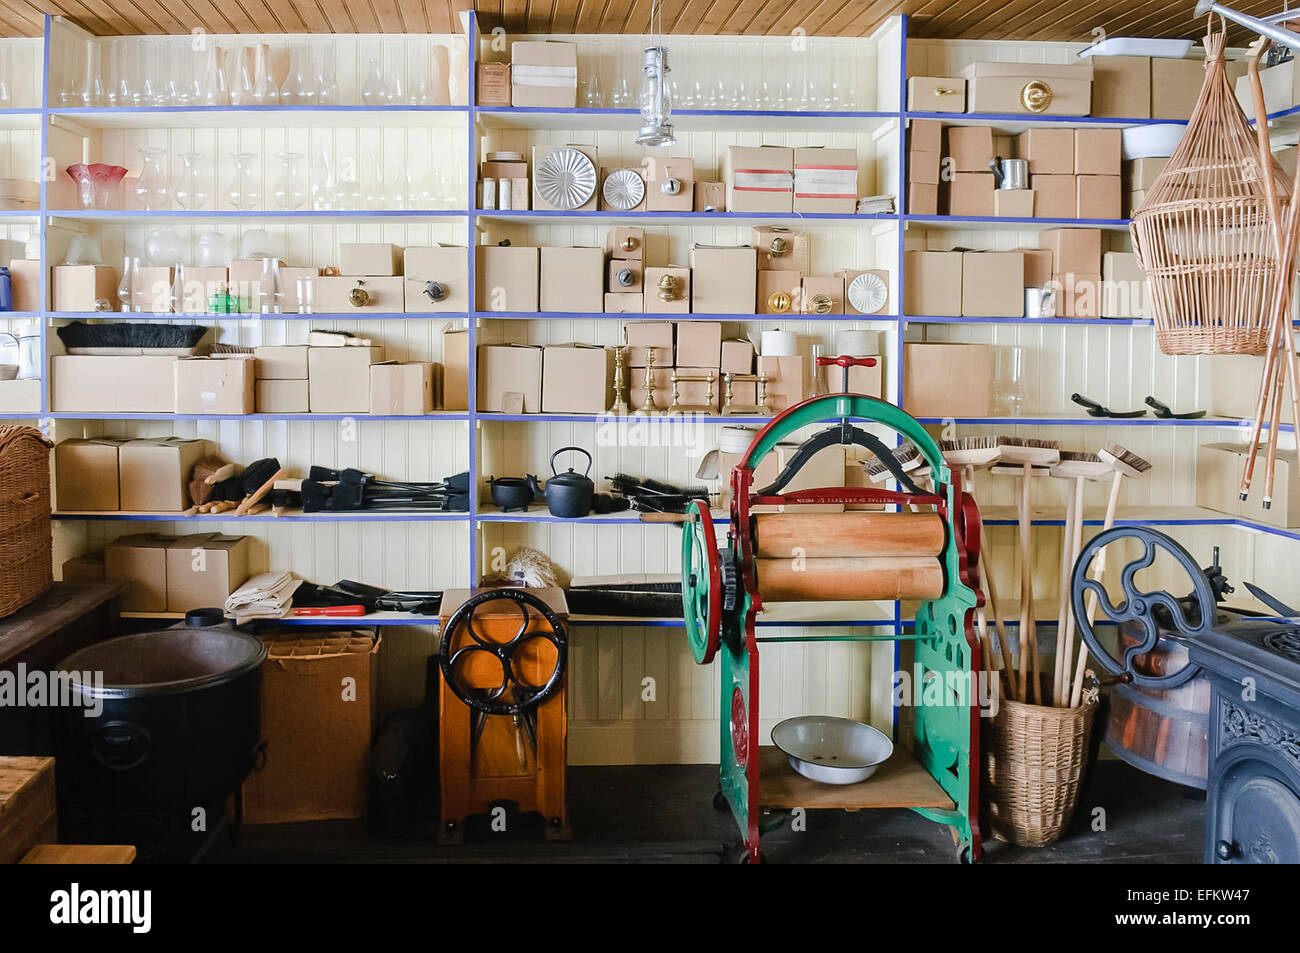 Boxes of household items at an old fashioned Irish hardware store - Stock Image